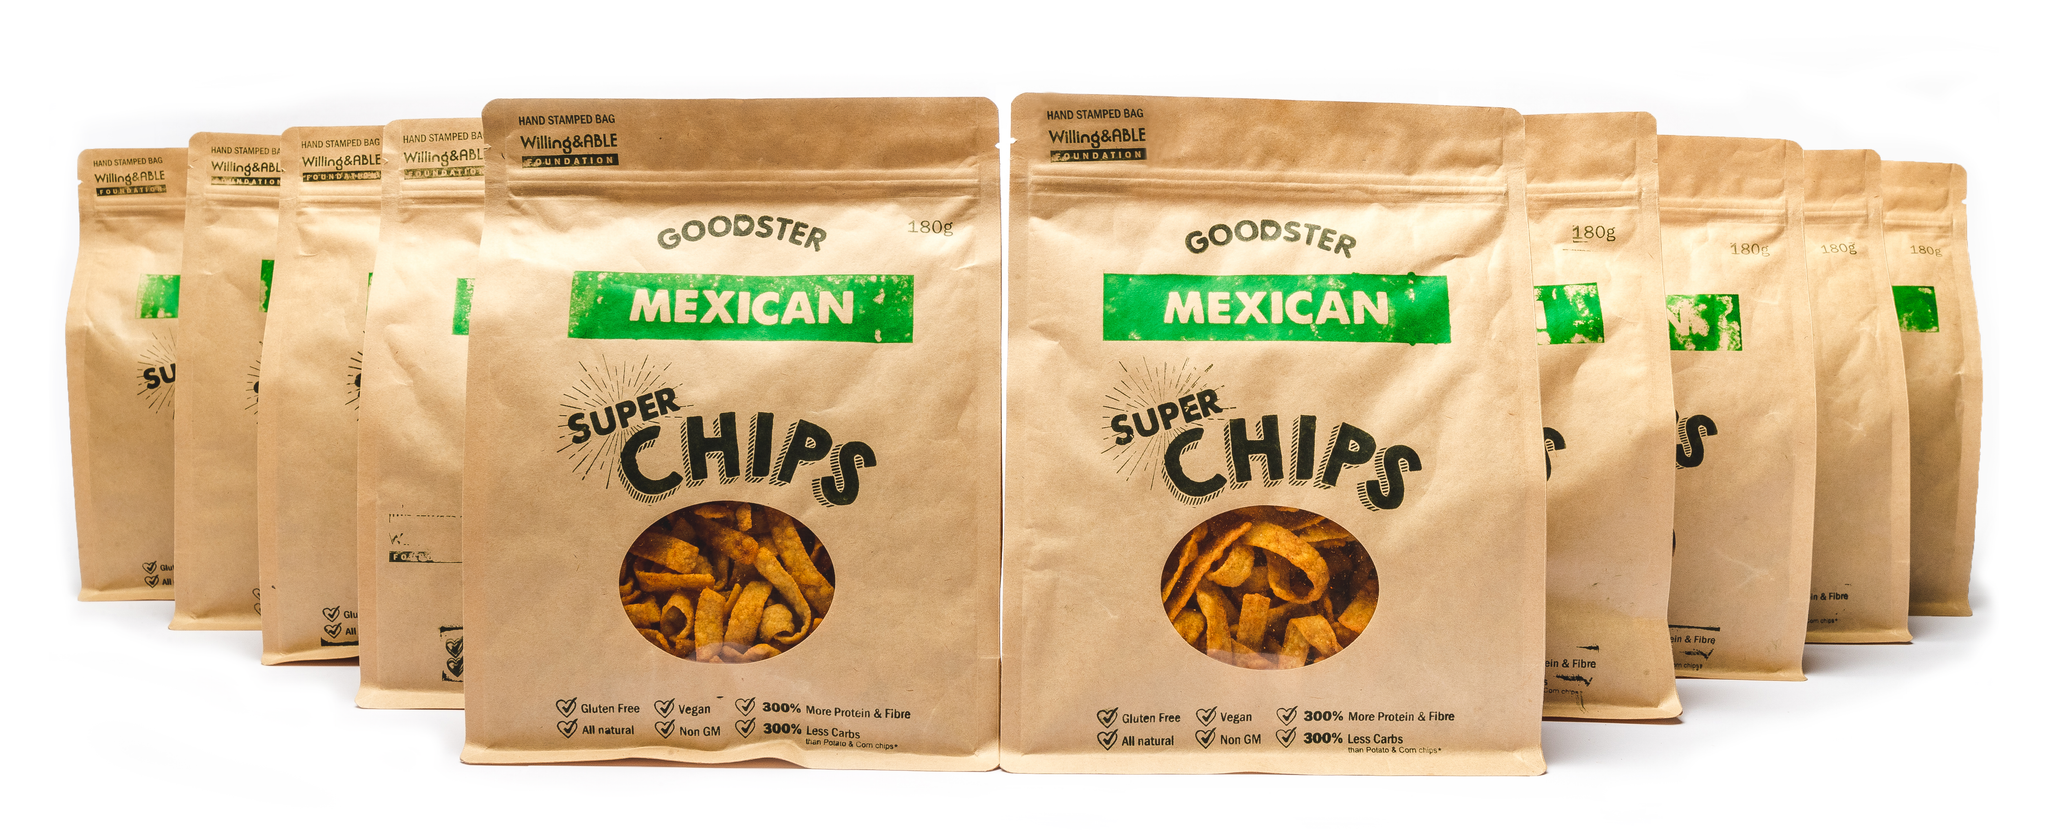 Mexican Goodster Super Chips (10 bags)